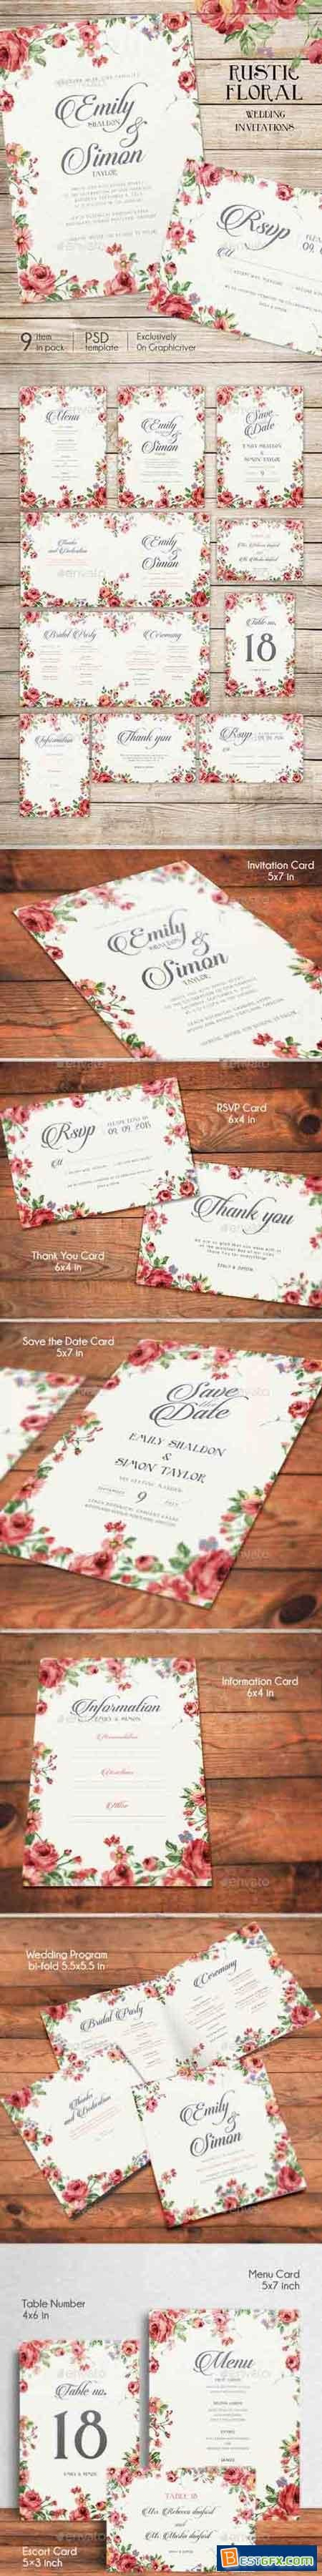 Rustic Floral Wedding Invitations 10358801